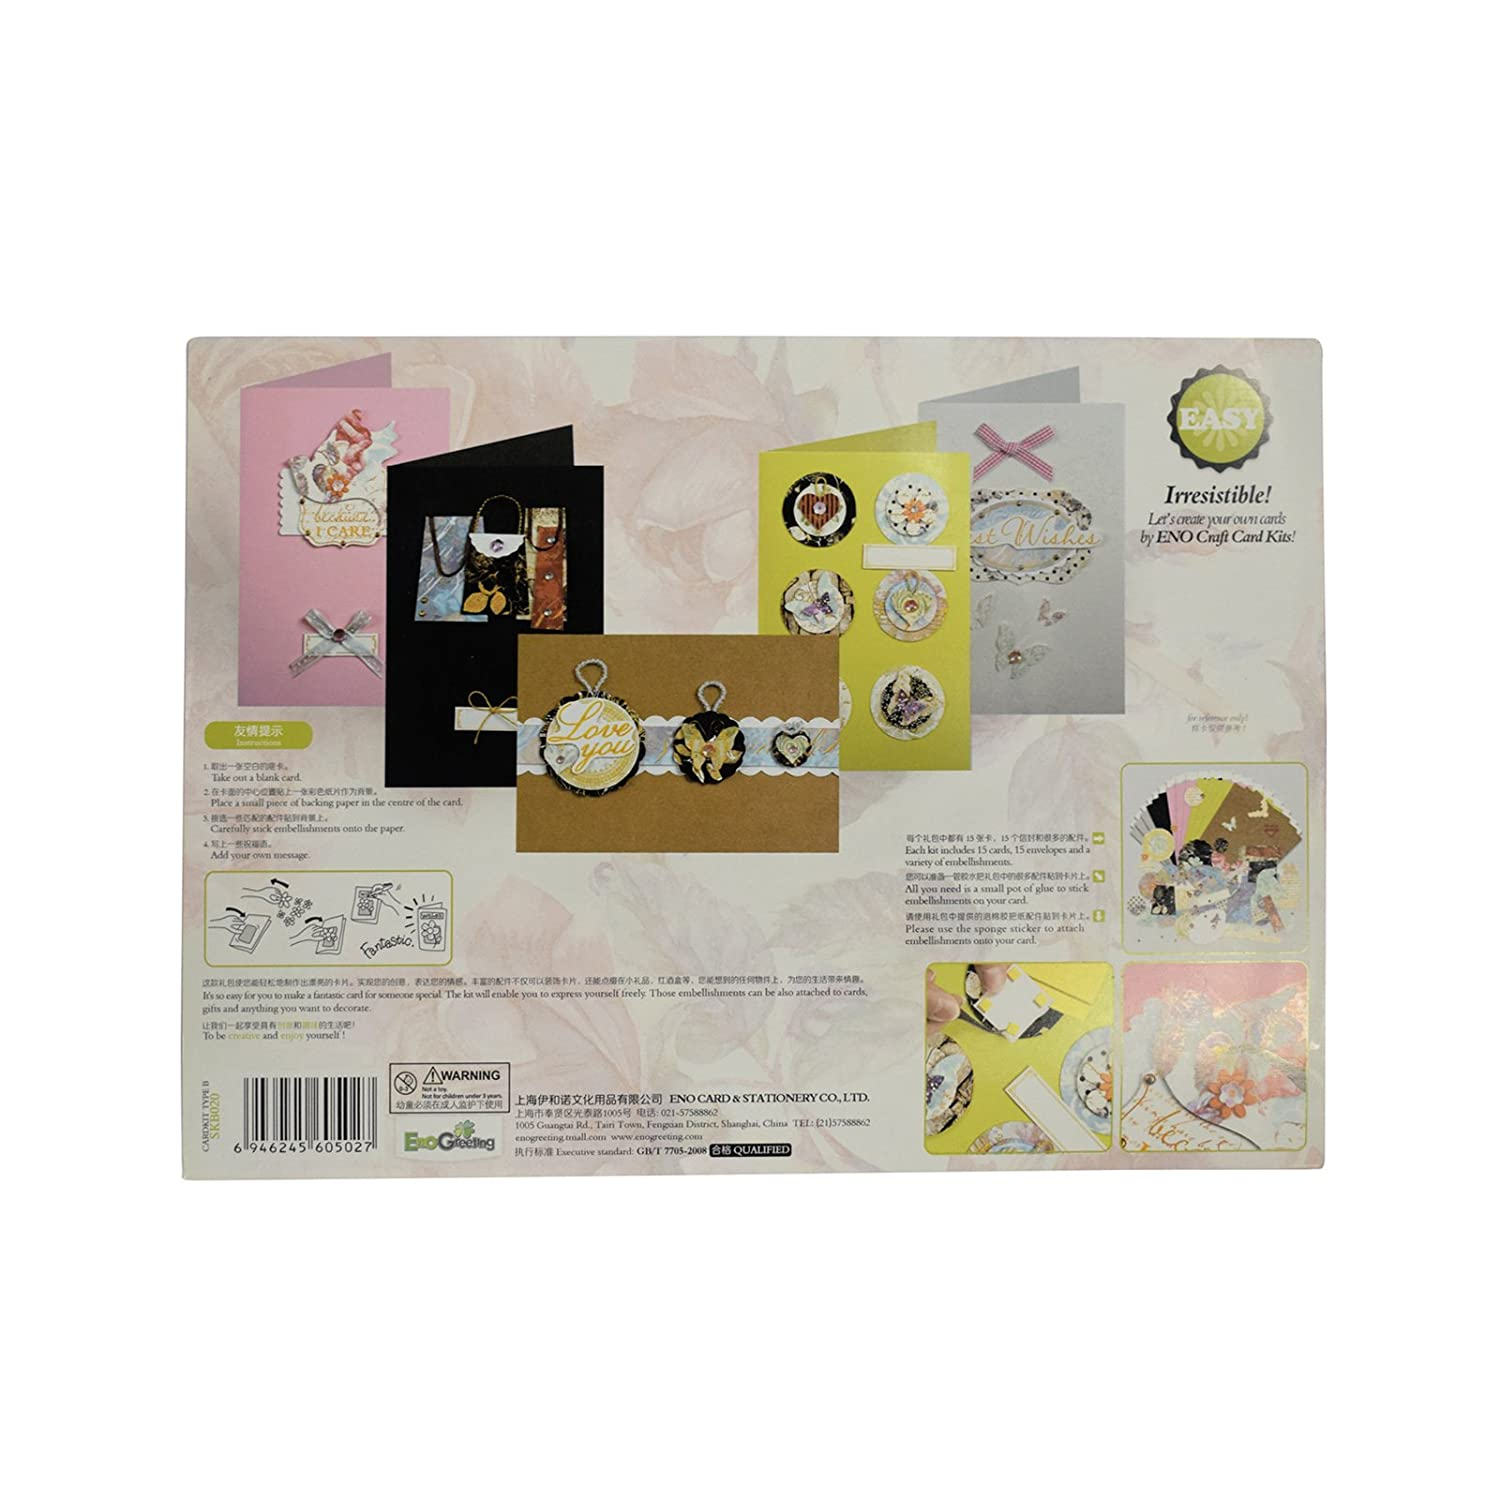 Buy asian hobby crafts skb018 card making kit by eno greeting buy asian hobby crafts skb018 card making kit by eno greeting pattern cards envelopes colorful embellishments decoupages fun theme online at low prices solutioingenieria Image collections